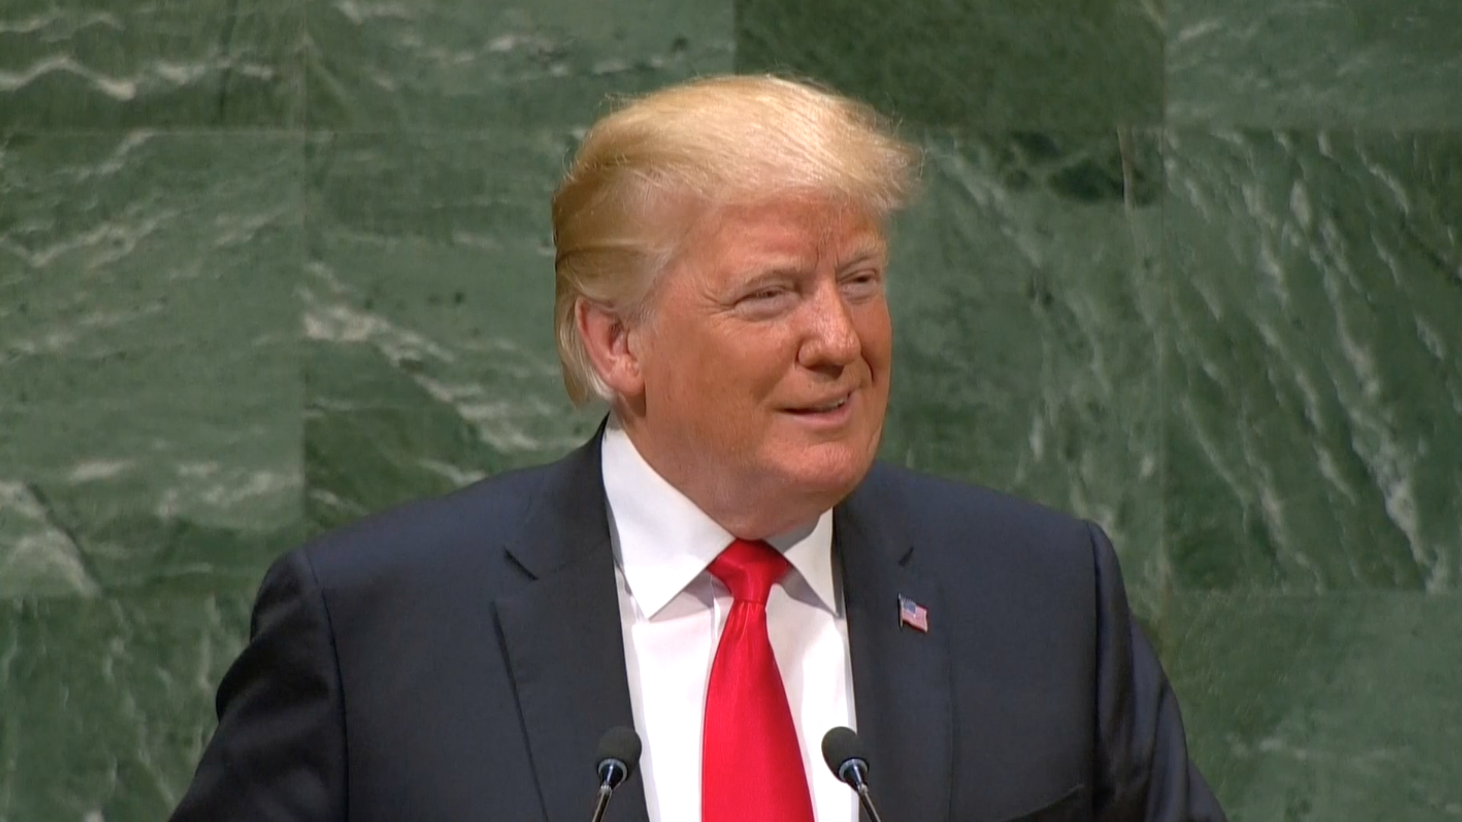 Trump rejects globalism, emphasizes 'America First' foreign policy approach in speech to U.N.